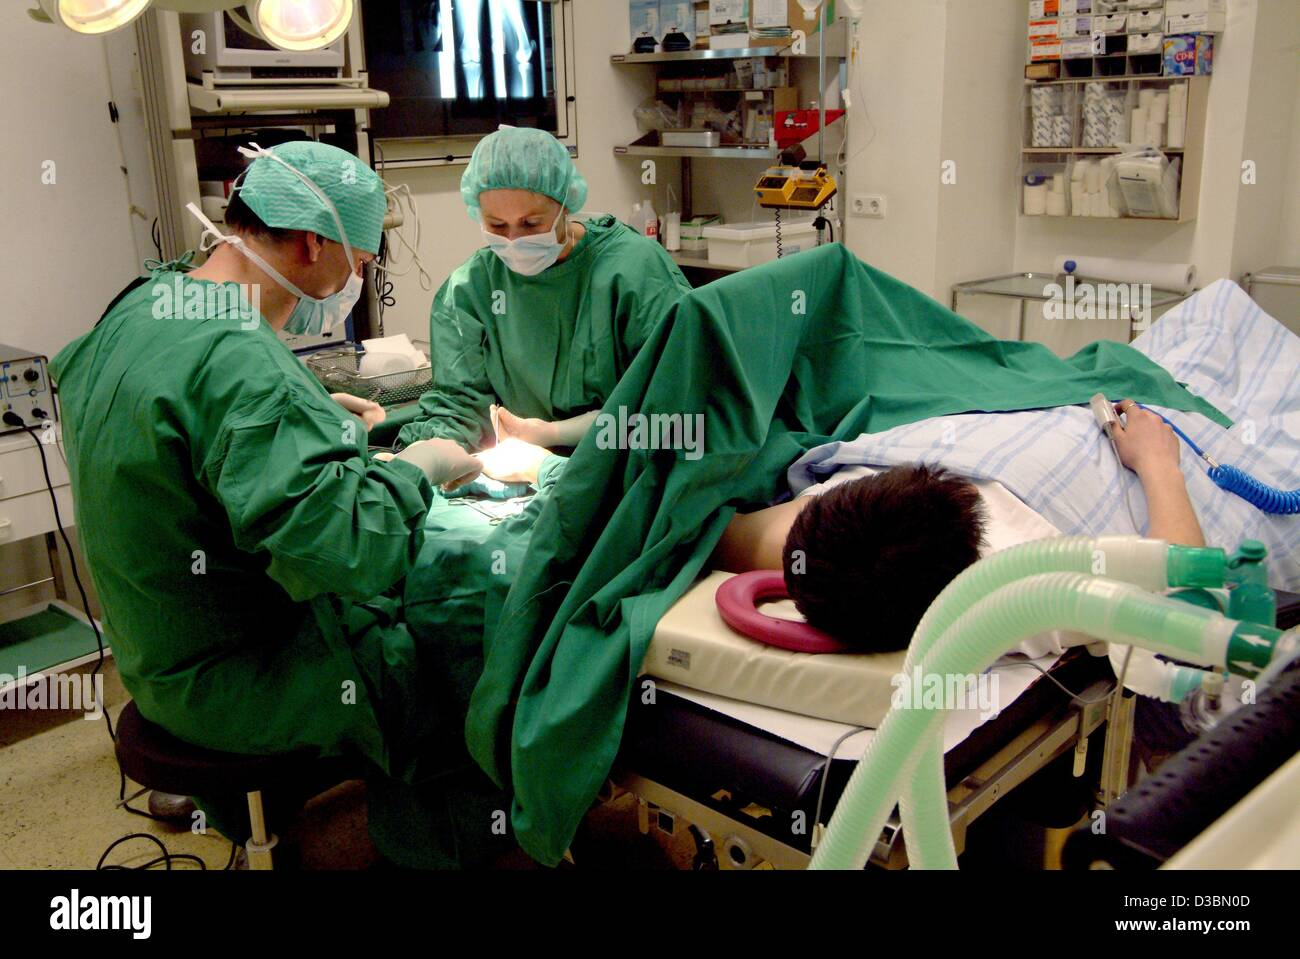 (dpa) - A surgeon and his assistant operate the hand of a patient at the hopsital in Iserlohn, Germany, 11 March - Stock Image